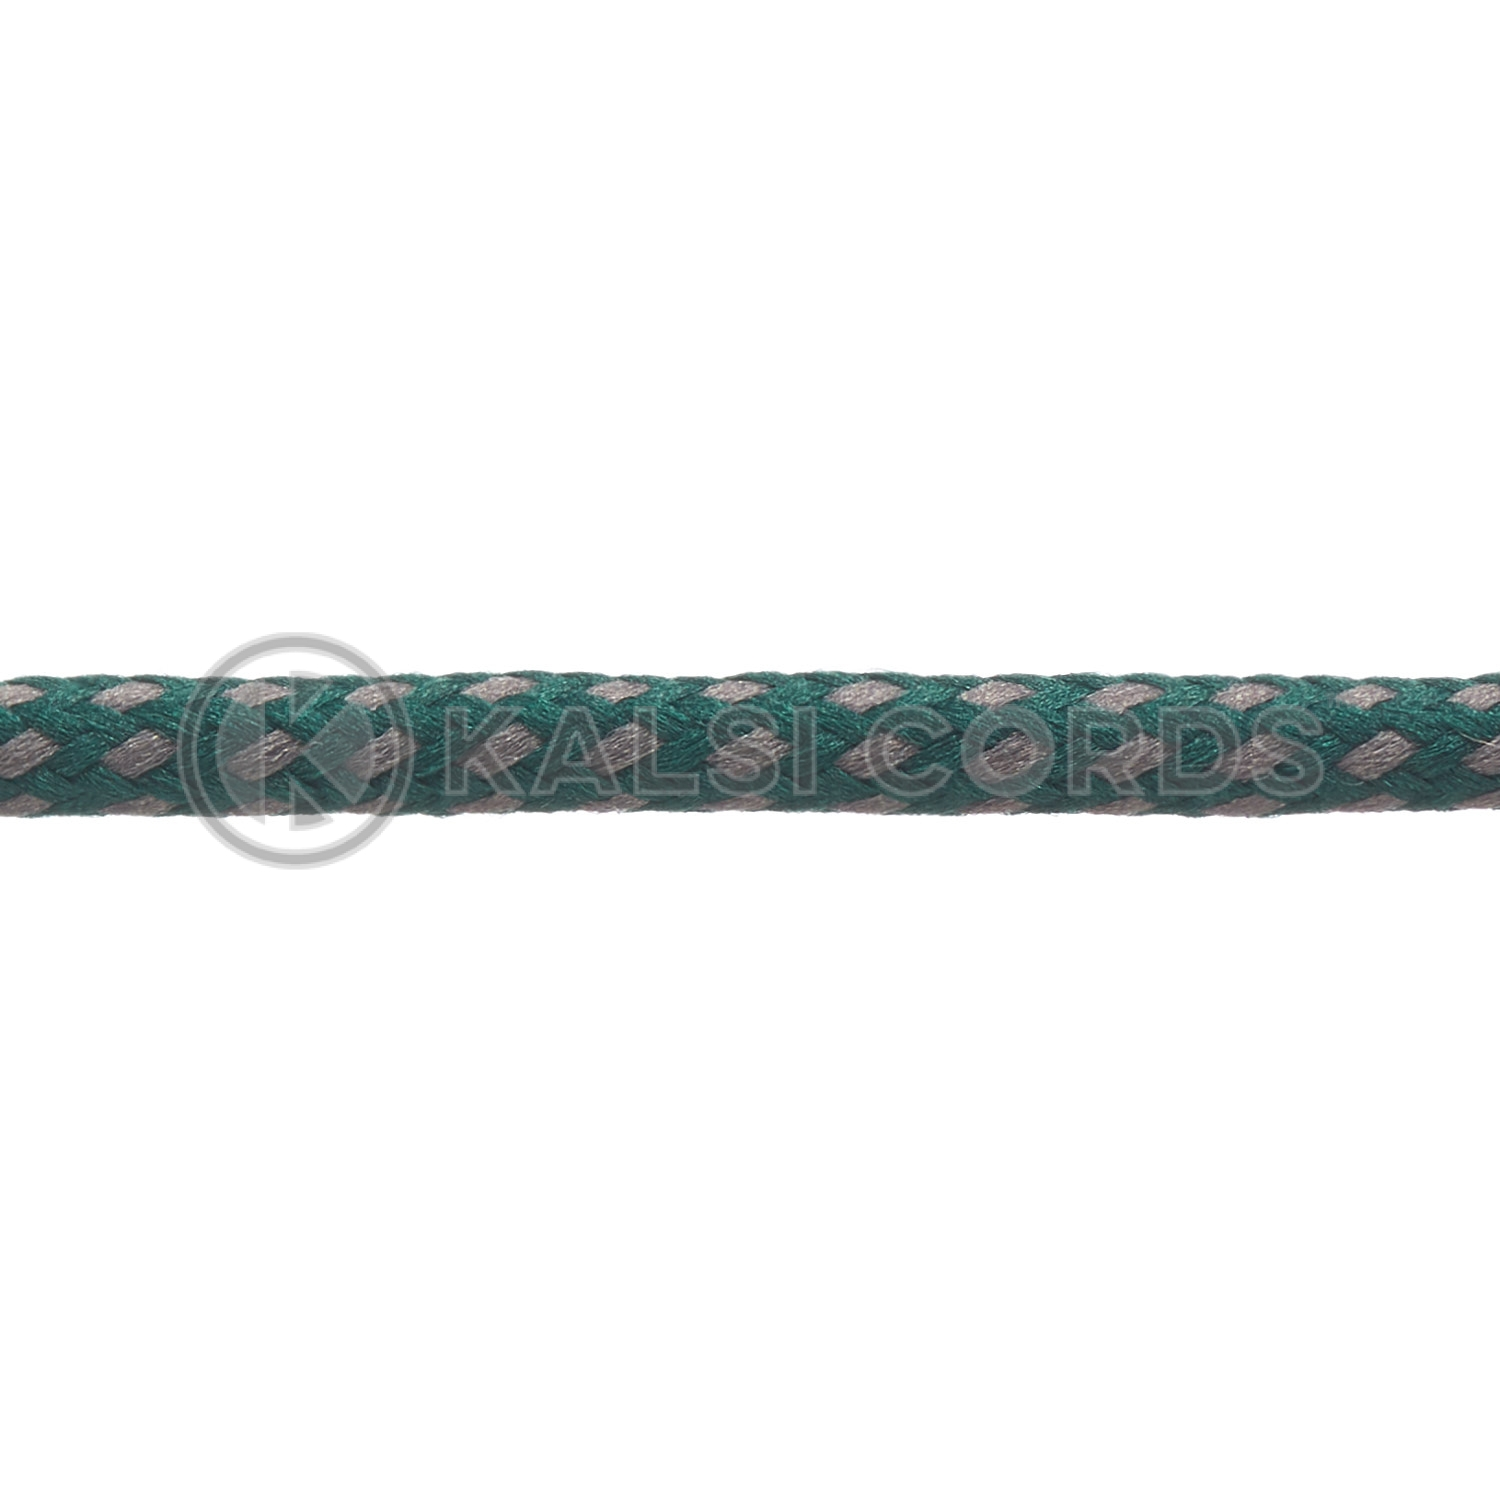 T621 5mm Round Cord Fleck Shoe Laces Cedar Green Grey Kids Trainers Adults Hiking Walking Boots Kalsi Cords